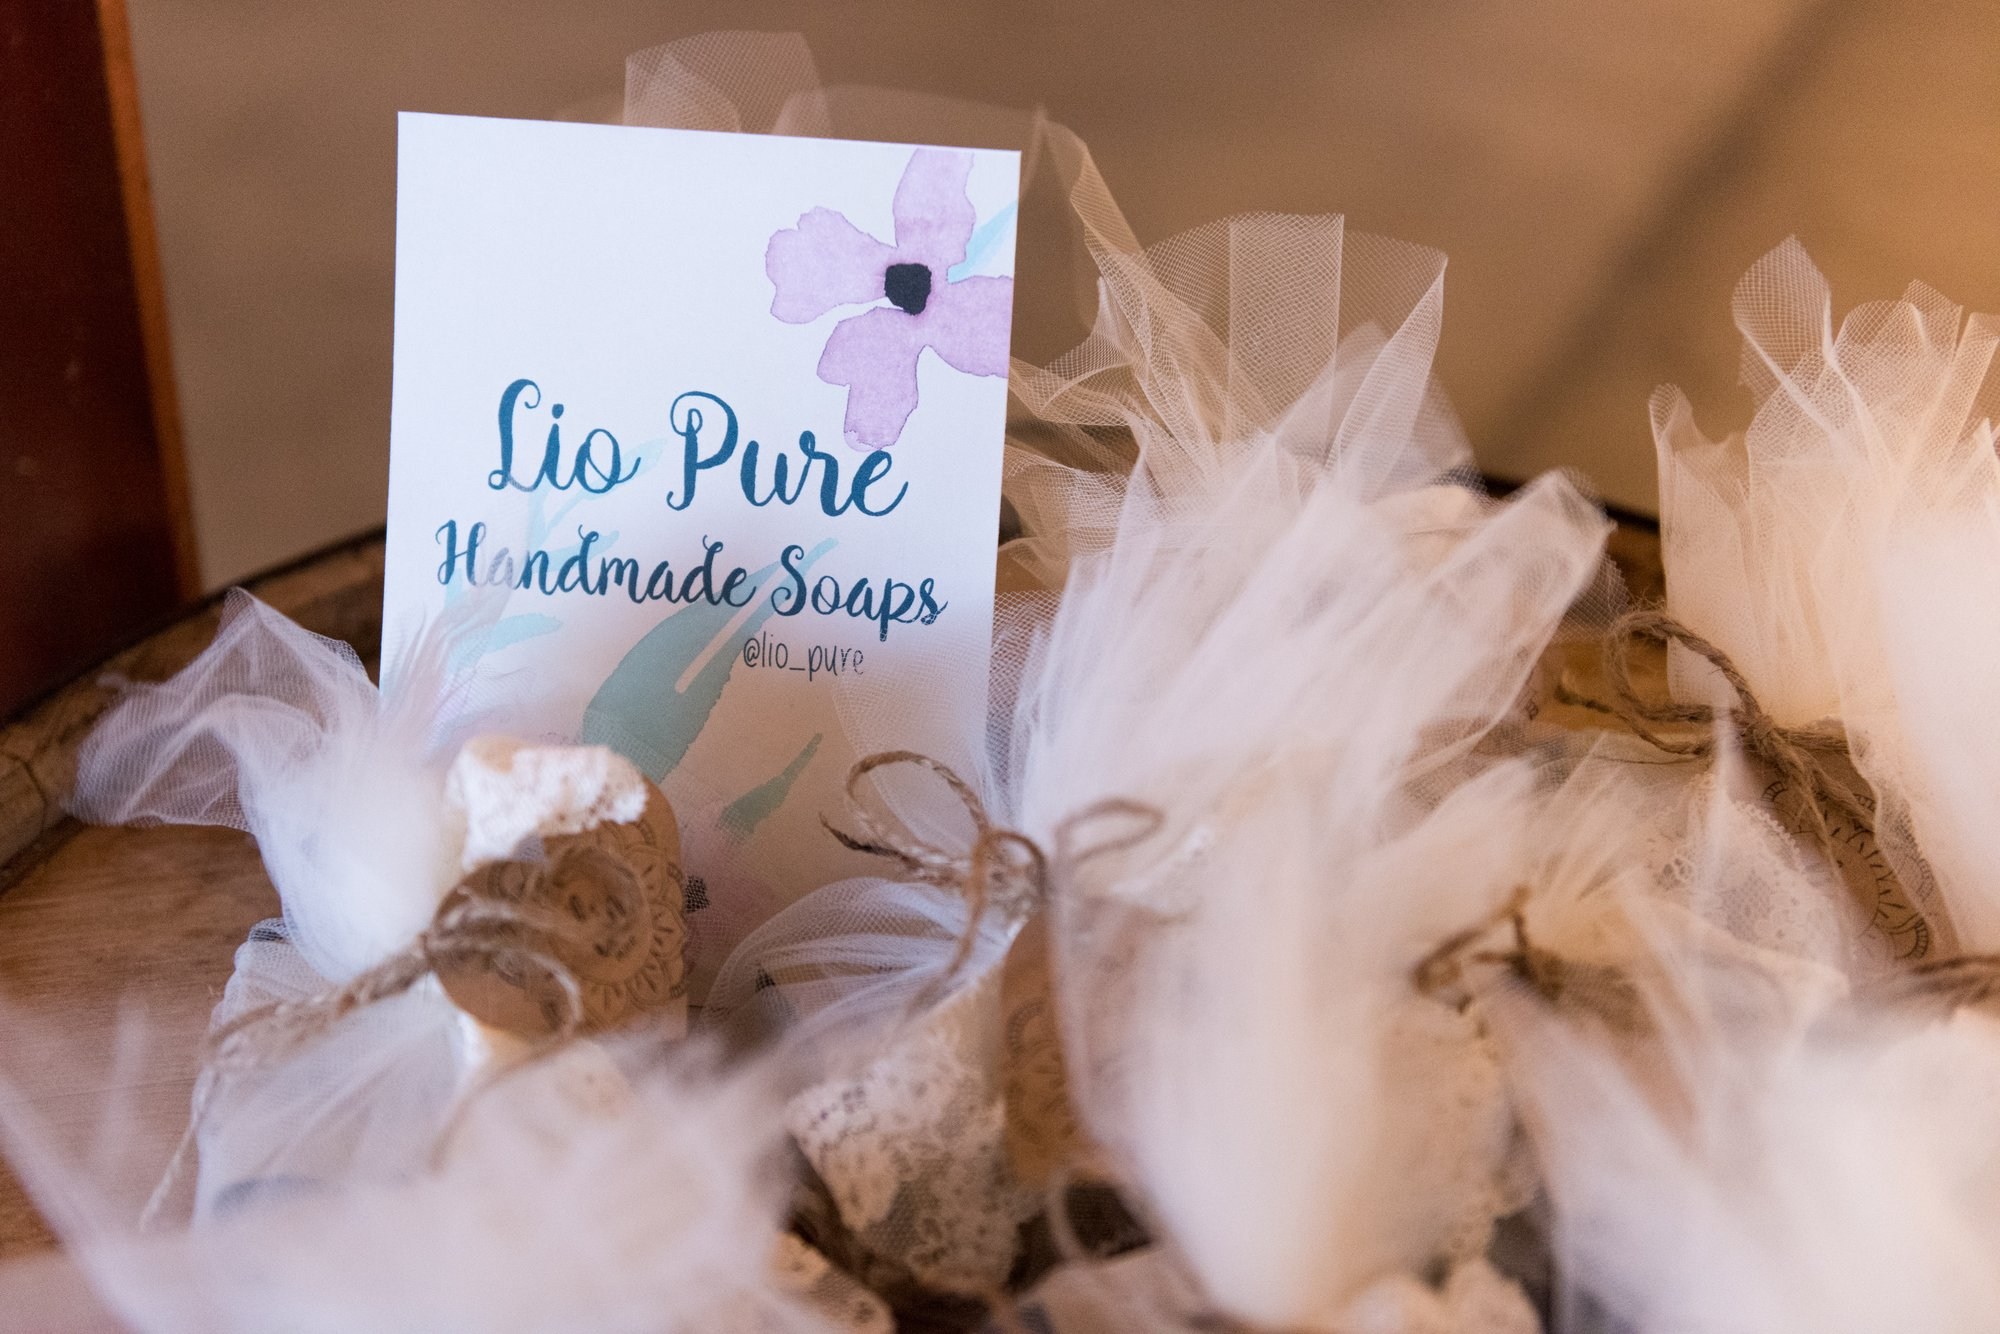 Lio Pure Handmade Soaps - Washington, DC soap